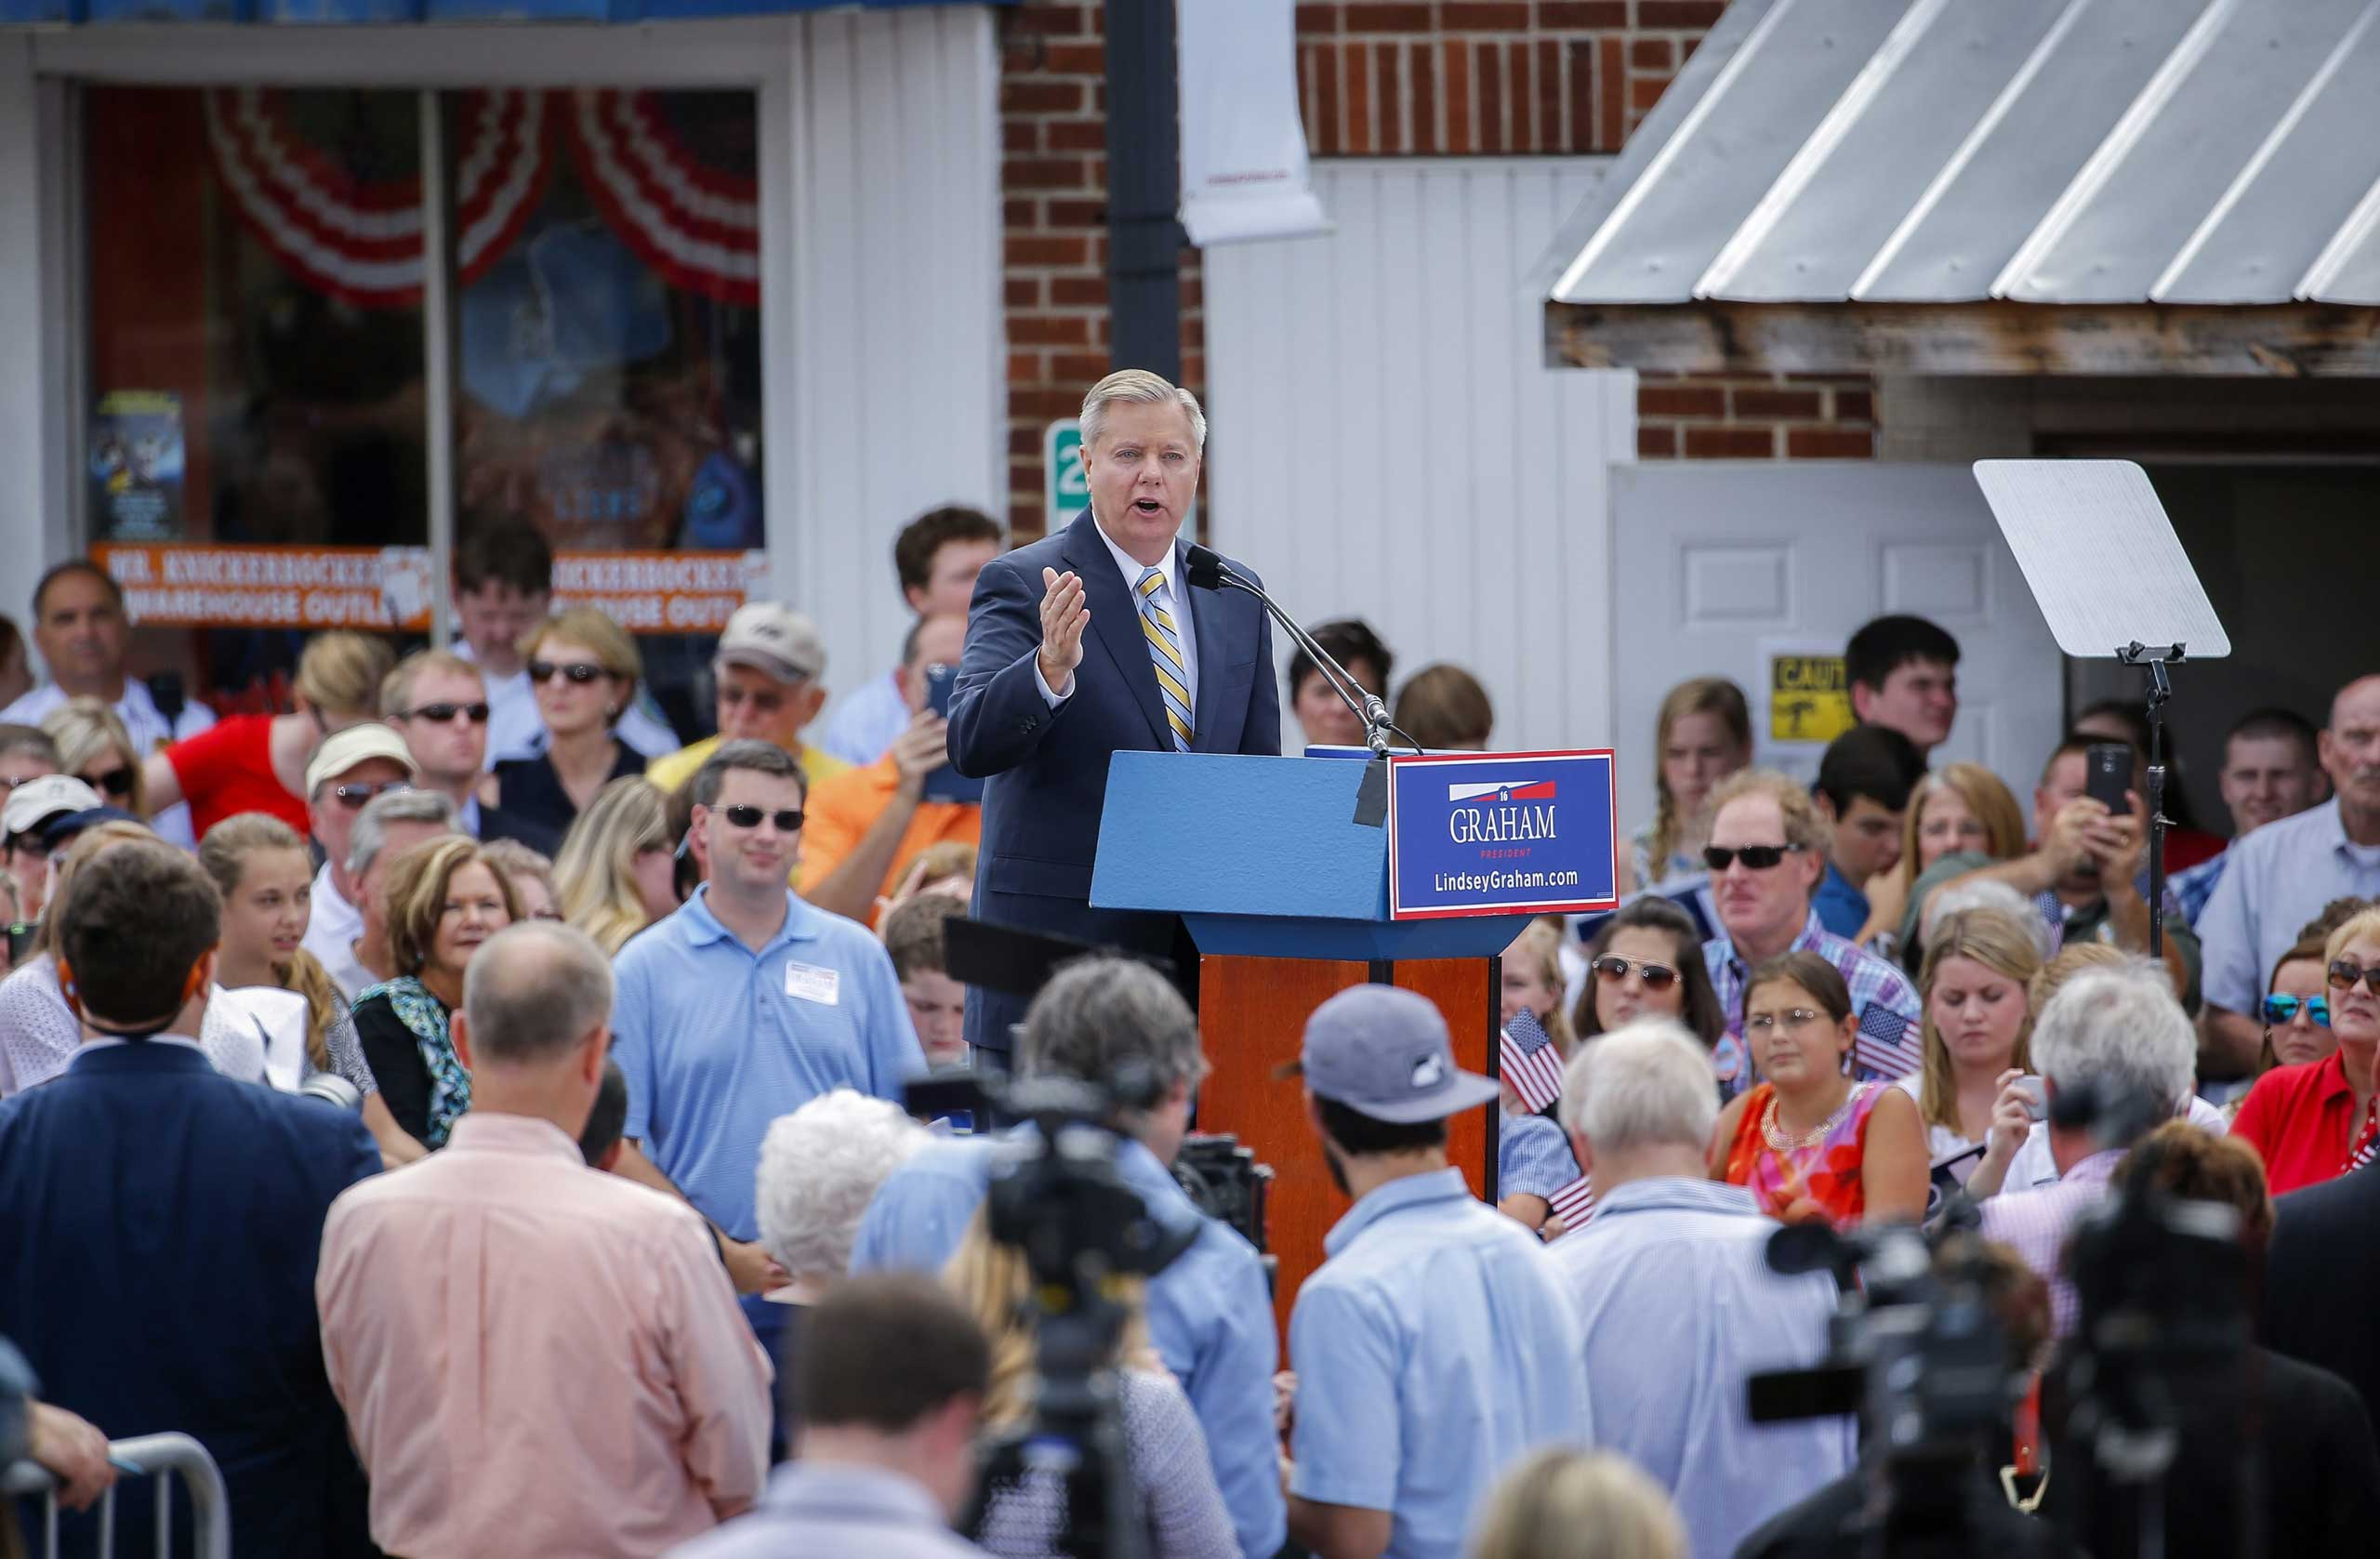 Republican Senator Lindsey Graham announces his 2016 presidential candidacy in Central, S.C. on June 1, 2015.